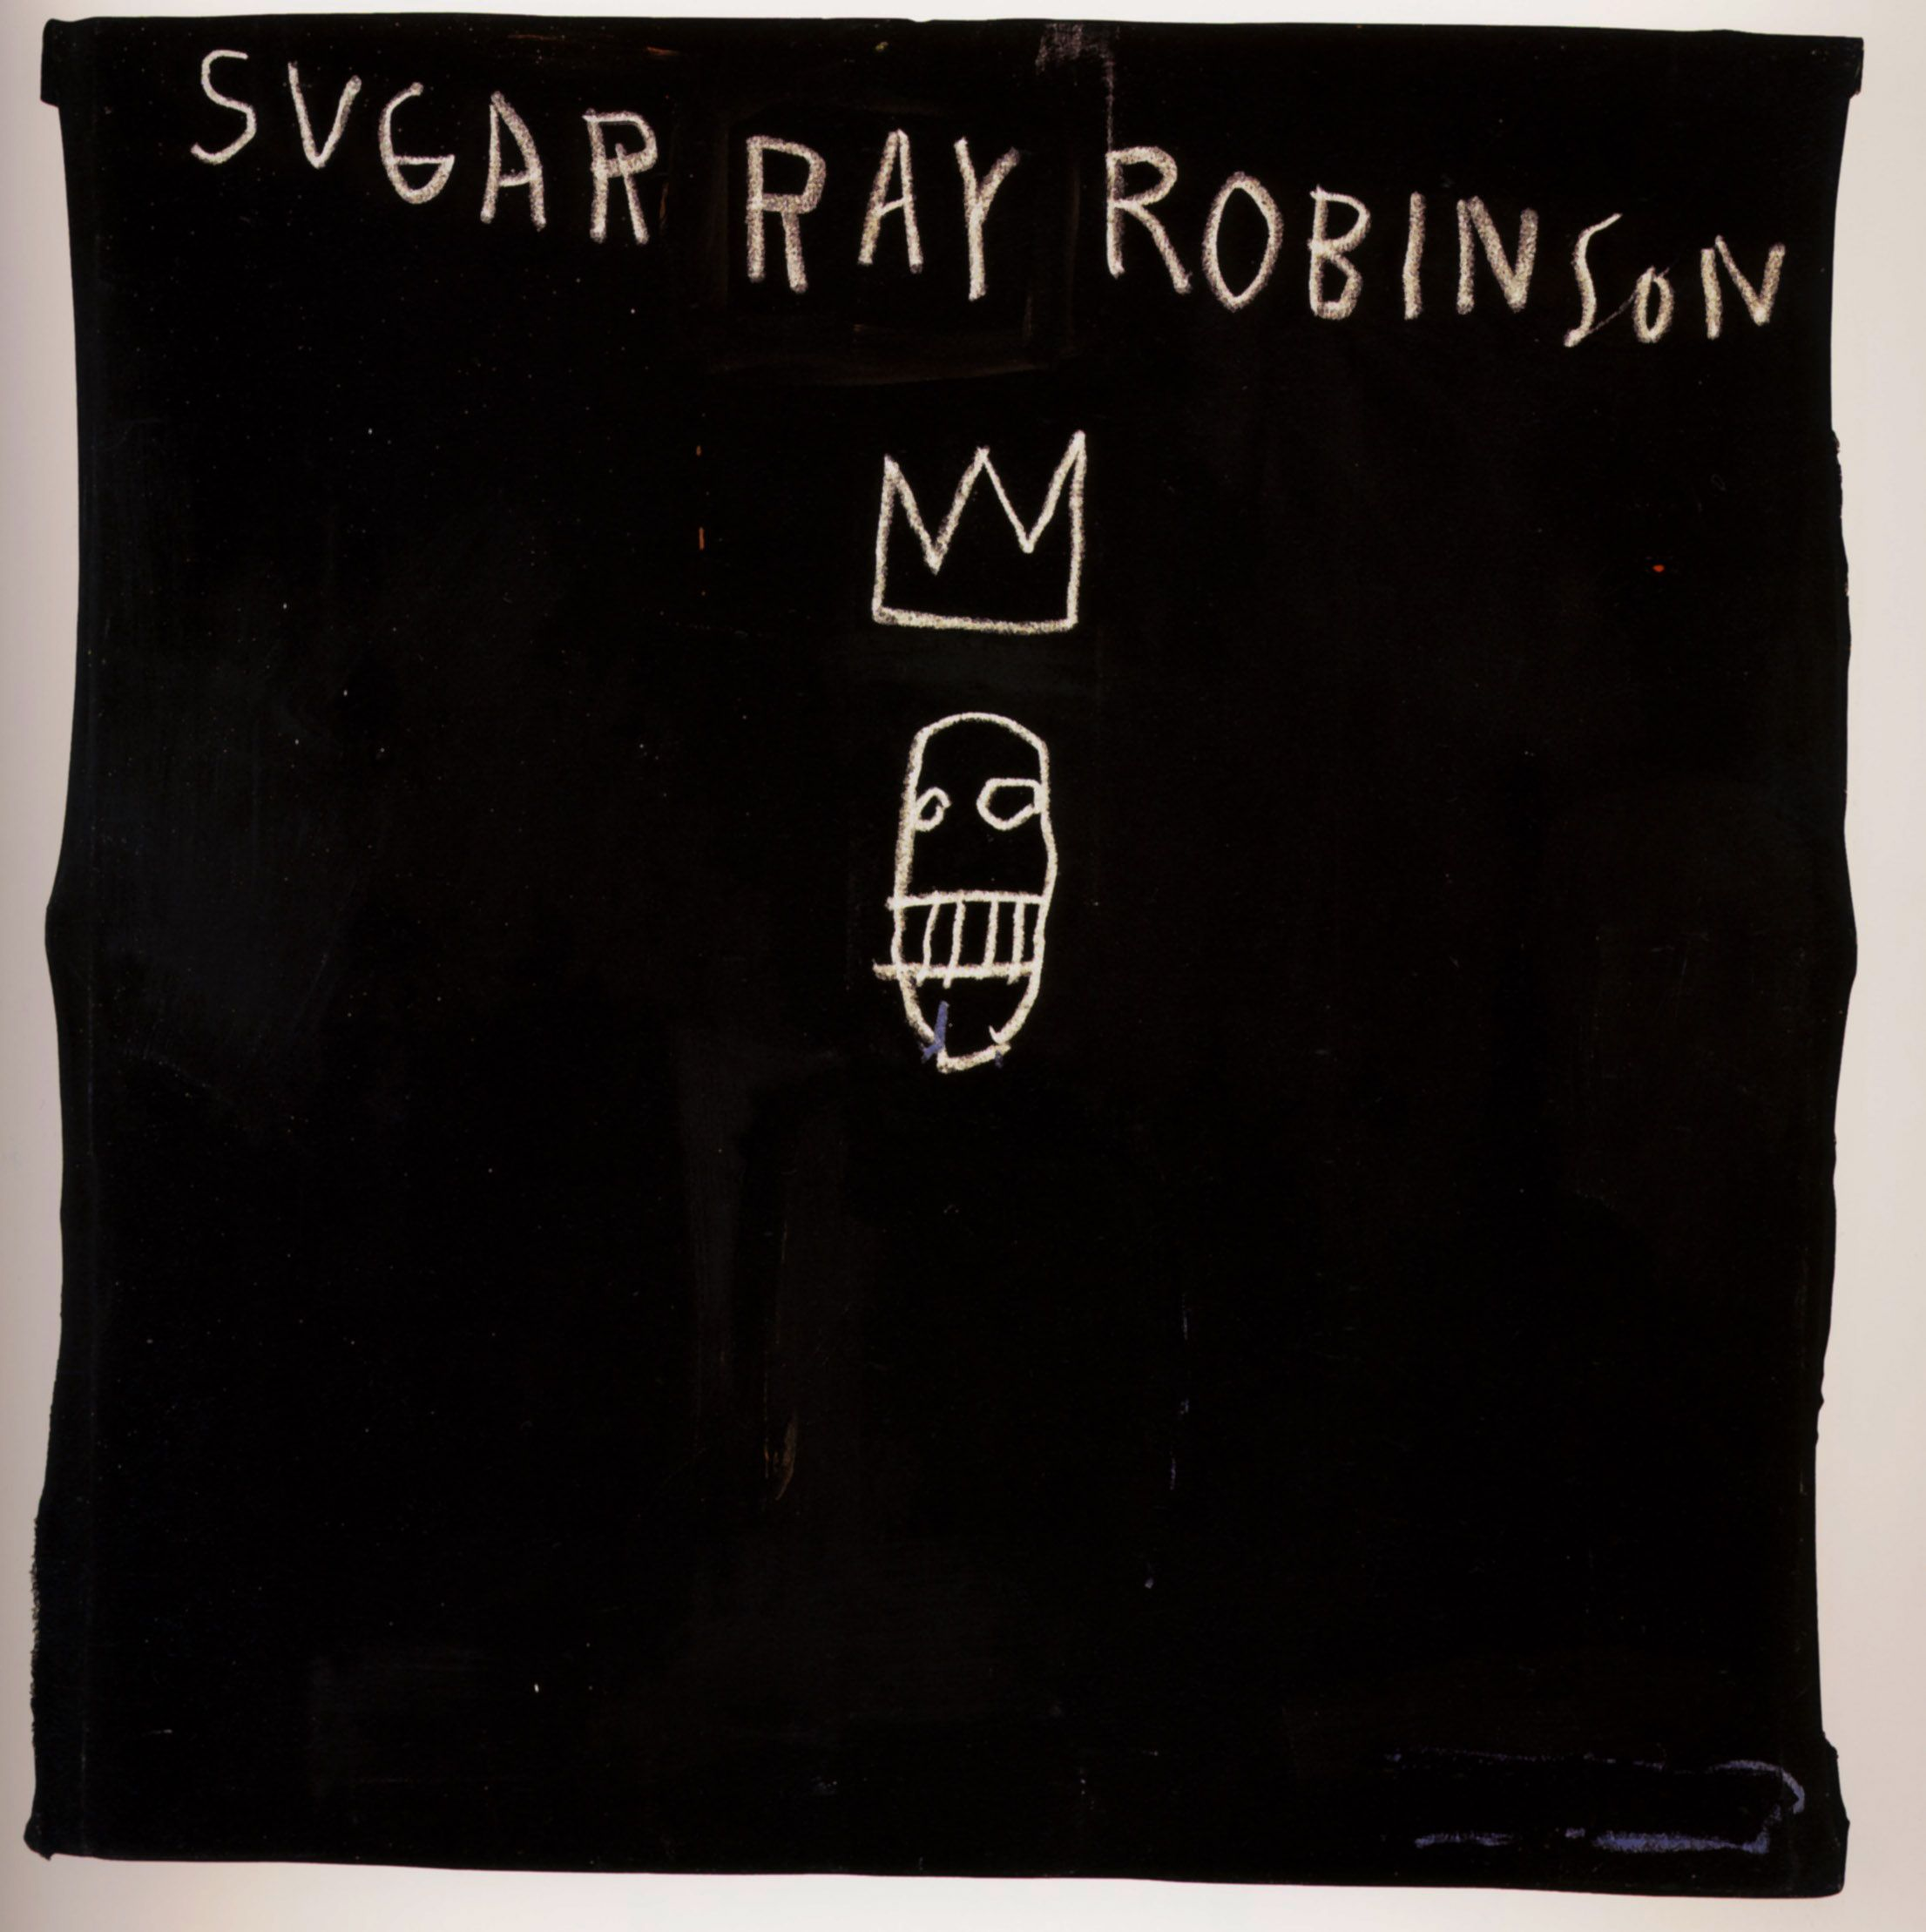 Jean-Michel Basquiat, Sugar Ray Robinson   Completion Date: 1982  Style: Neo-Expressionism